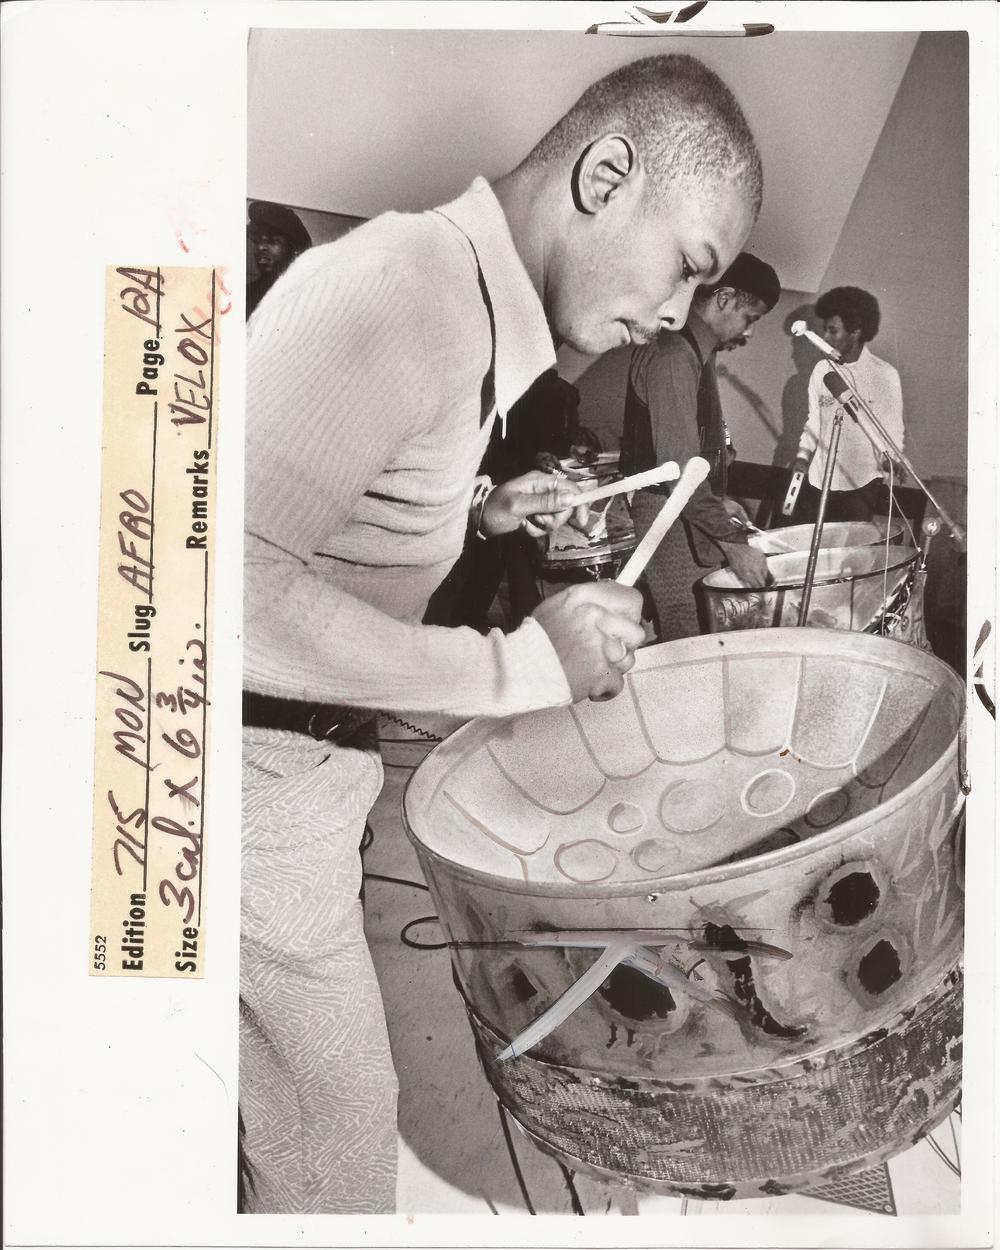 A photo from 1974 of Earl Harewood playing a tenor pan.  Haven't been able to find out anything about him. I did learn a good deal about the Earl Of Harewood.